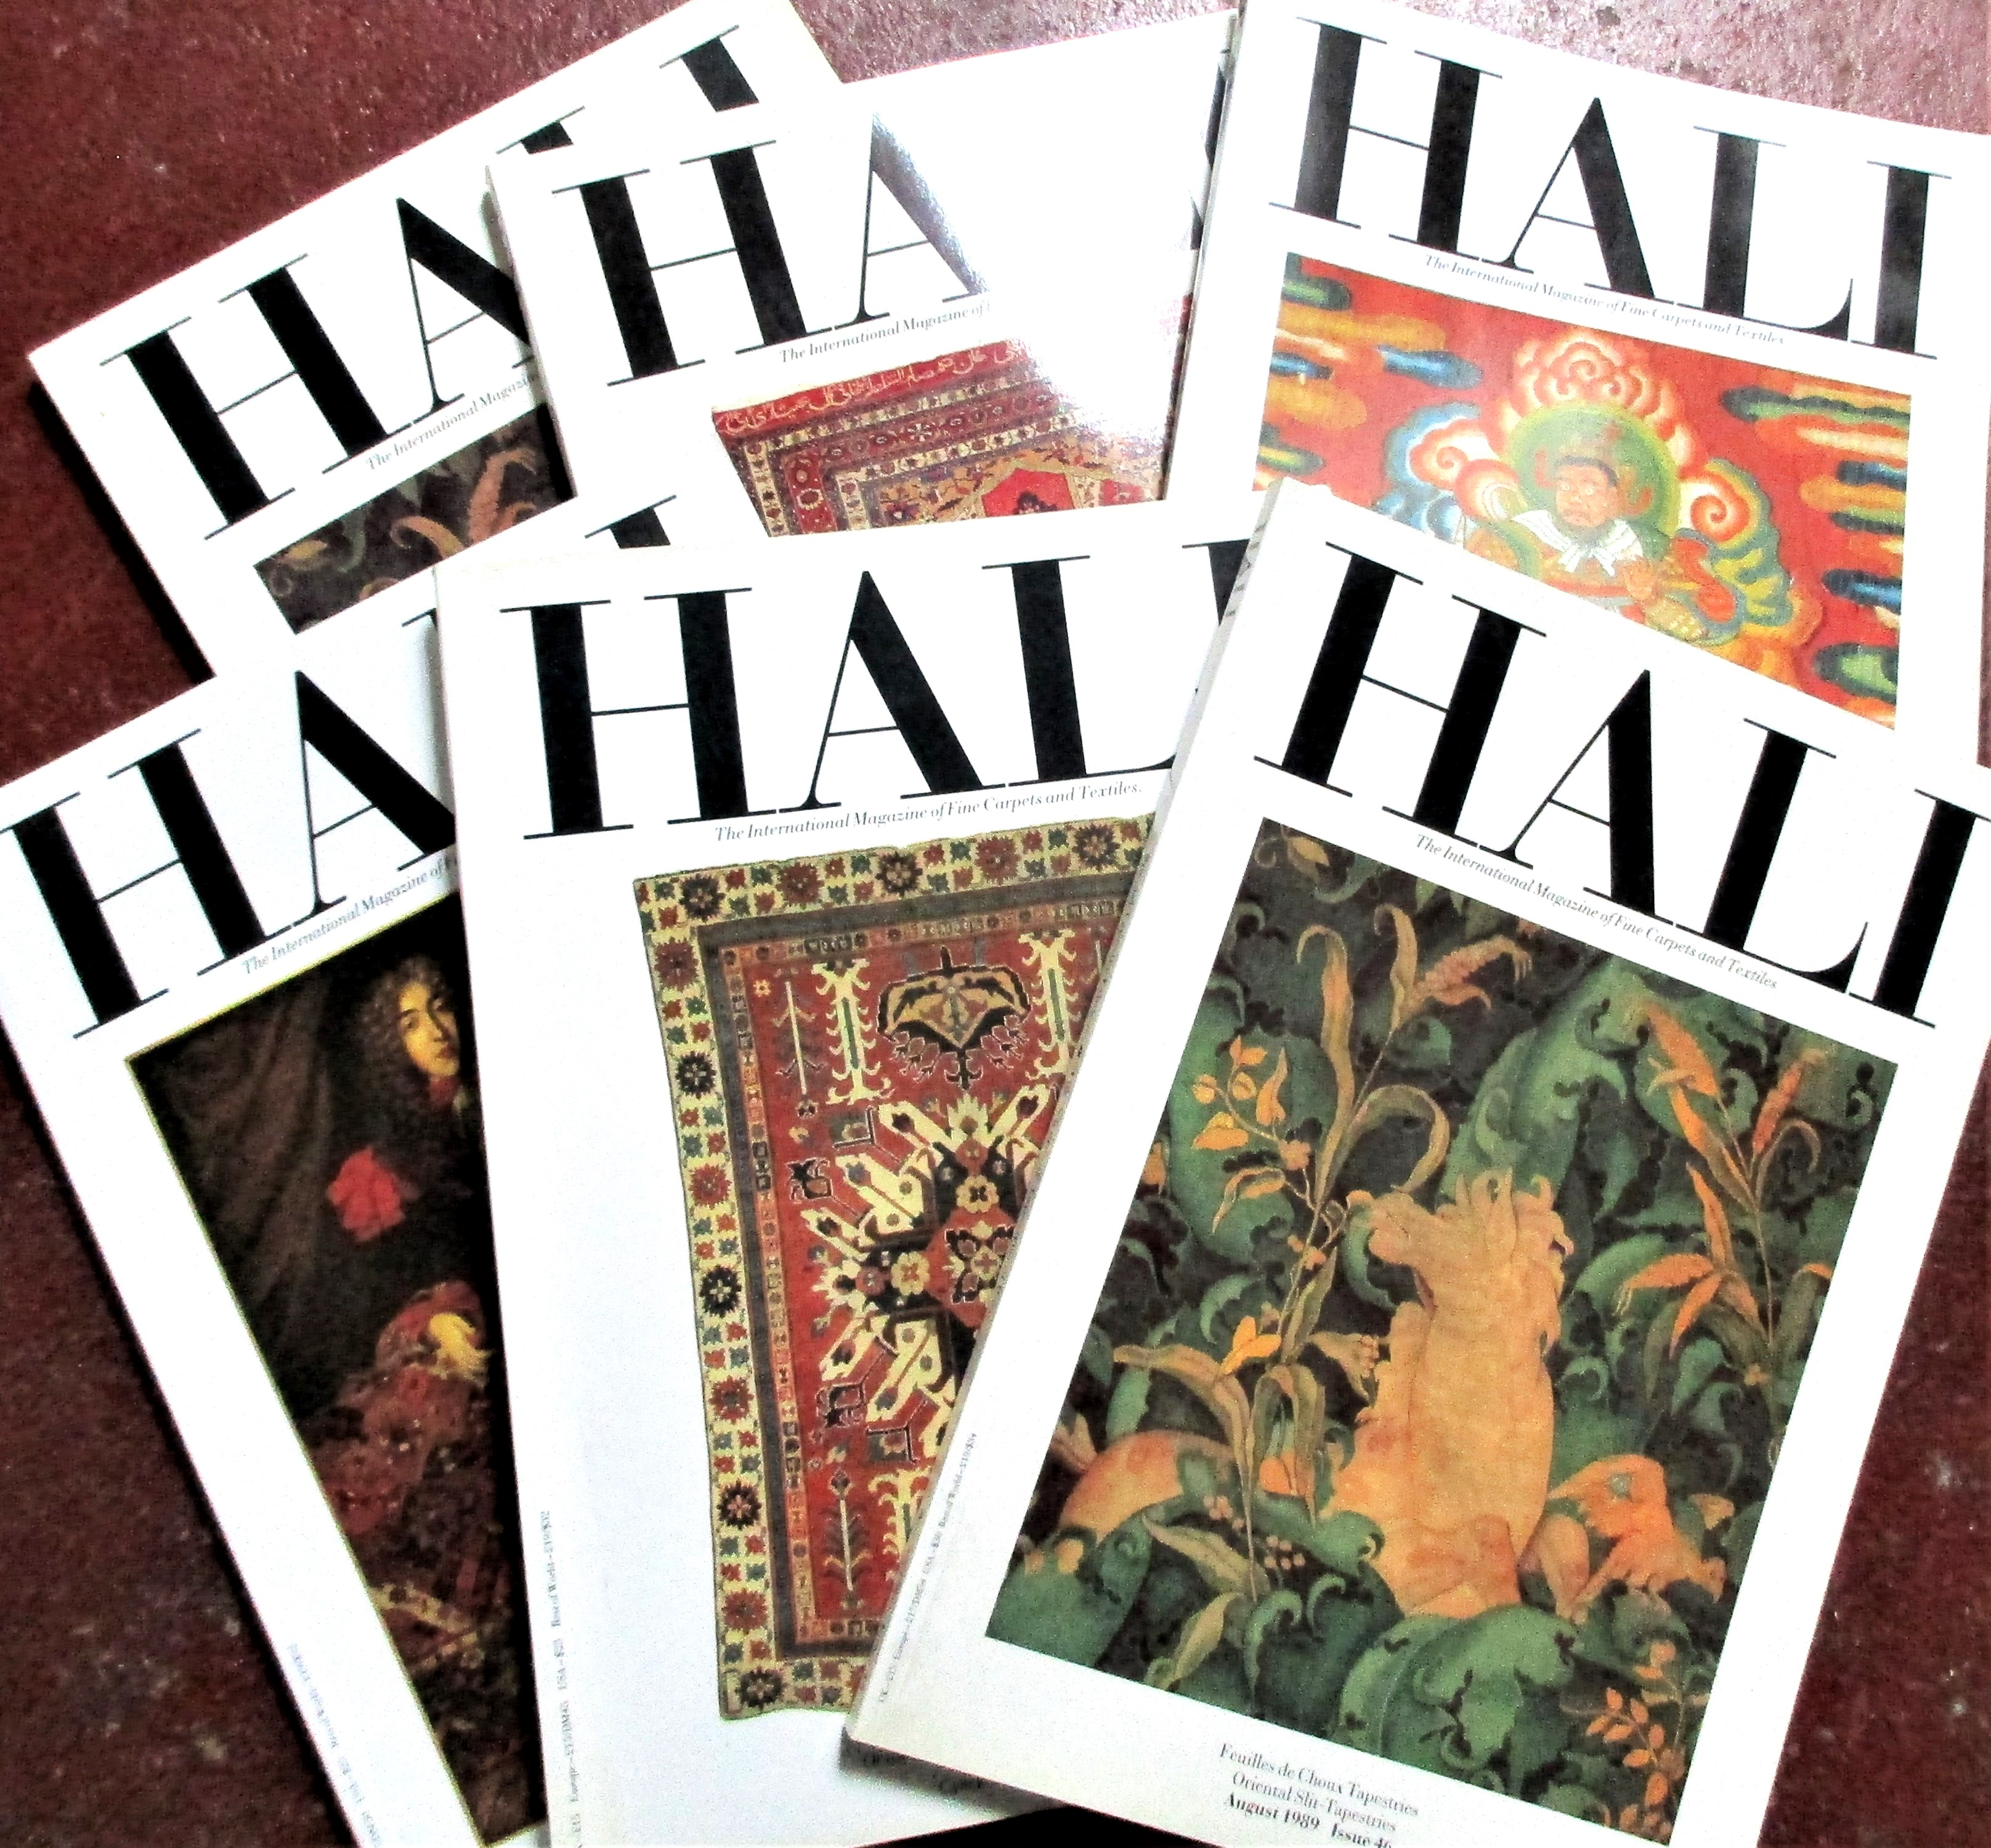 Hali magazine. Total of 60 copies. Notes: I have copies from #24 - #66 plus some early from 1980 -